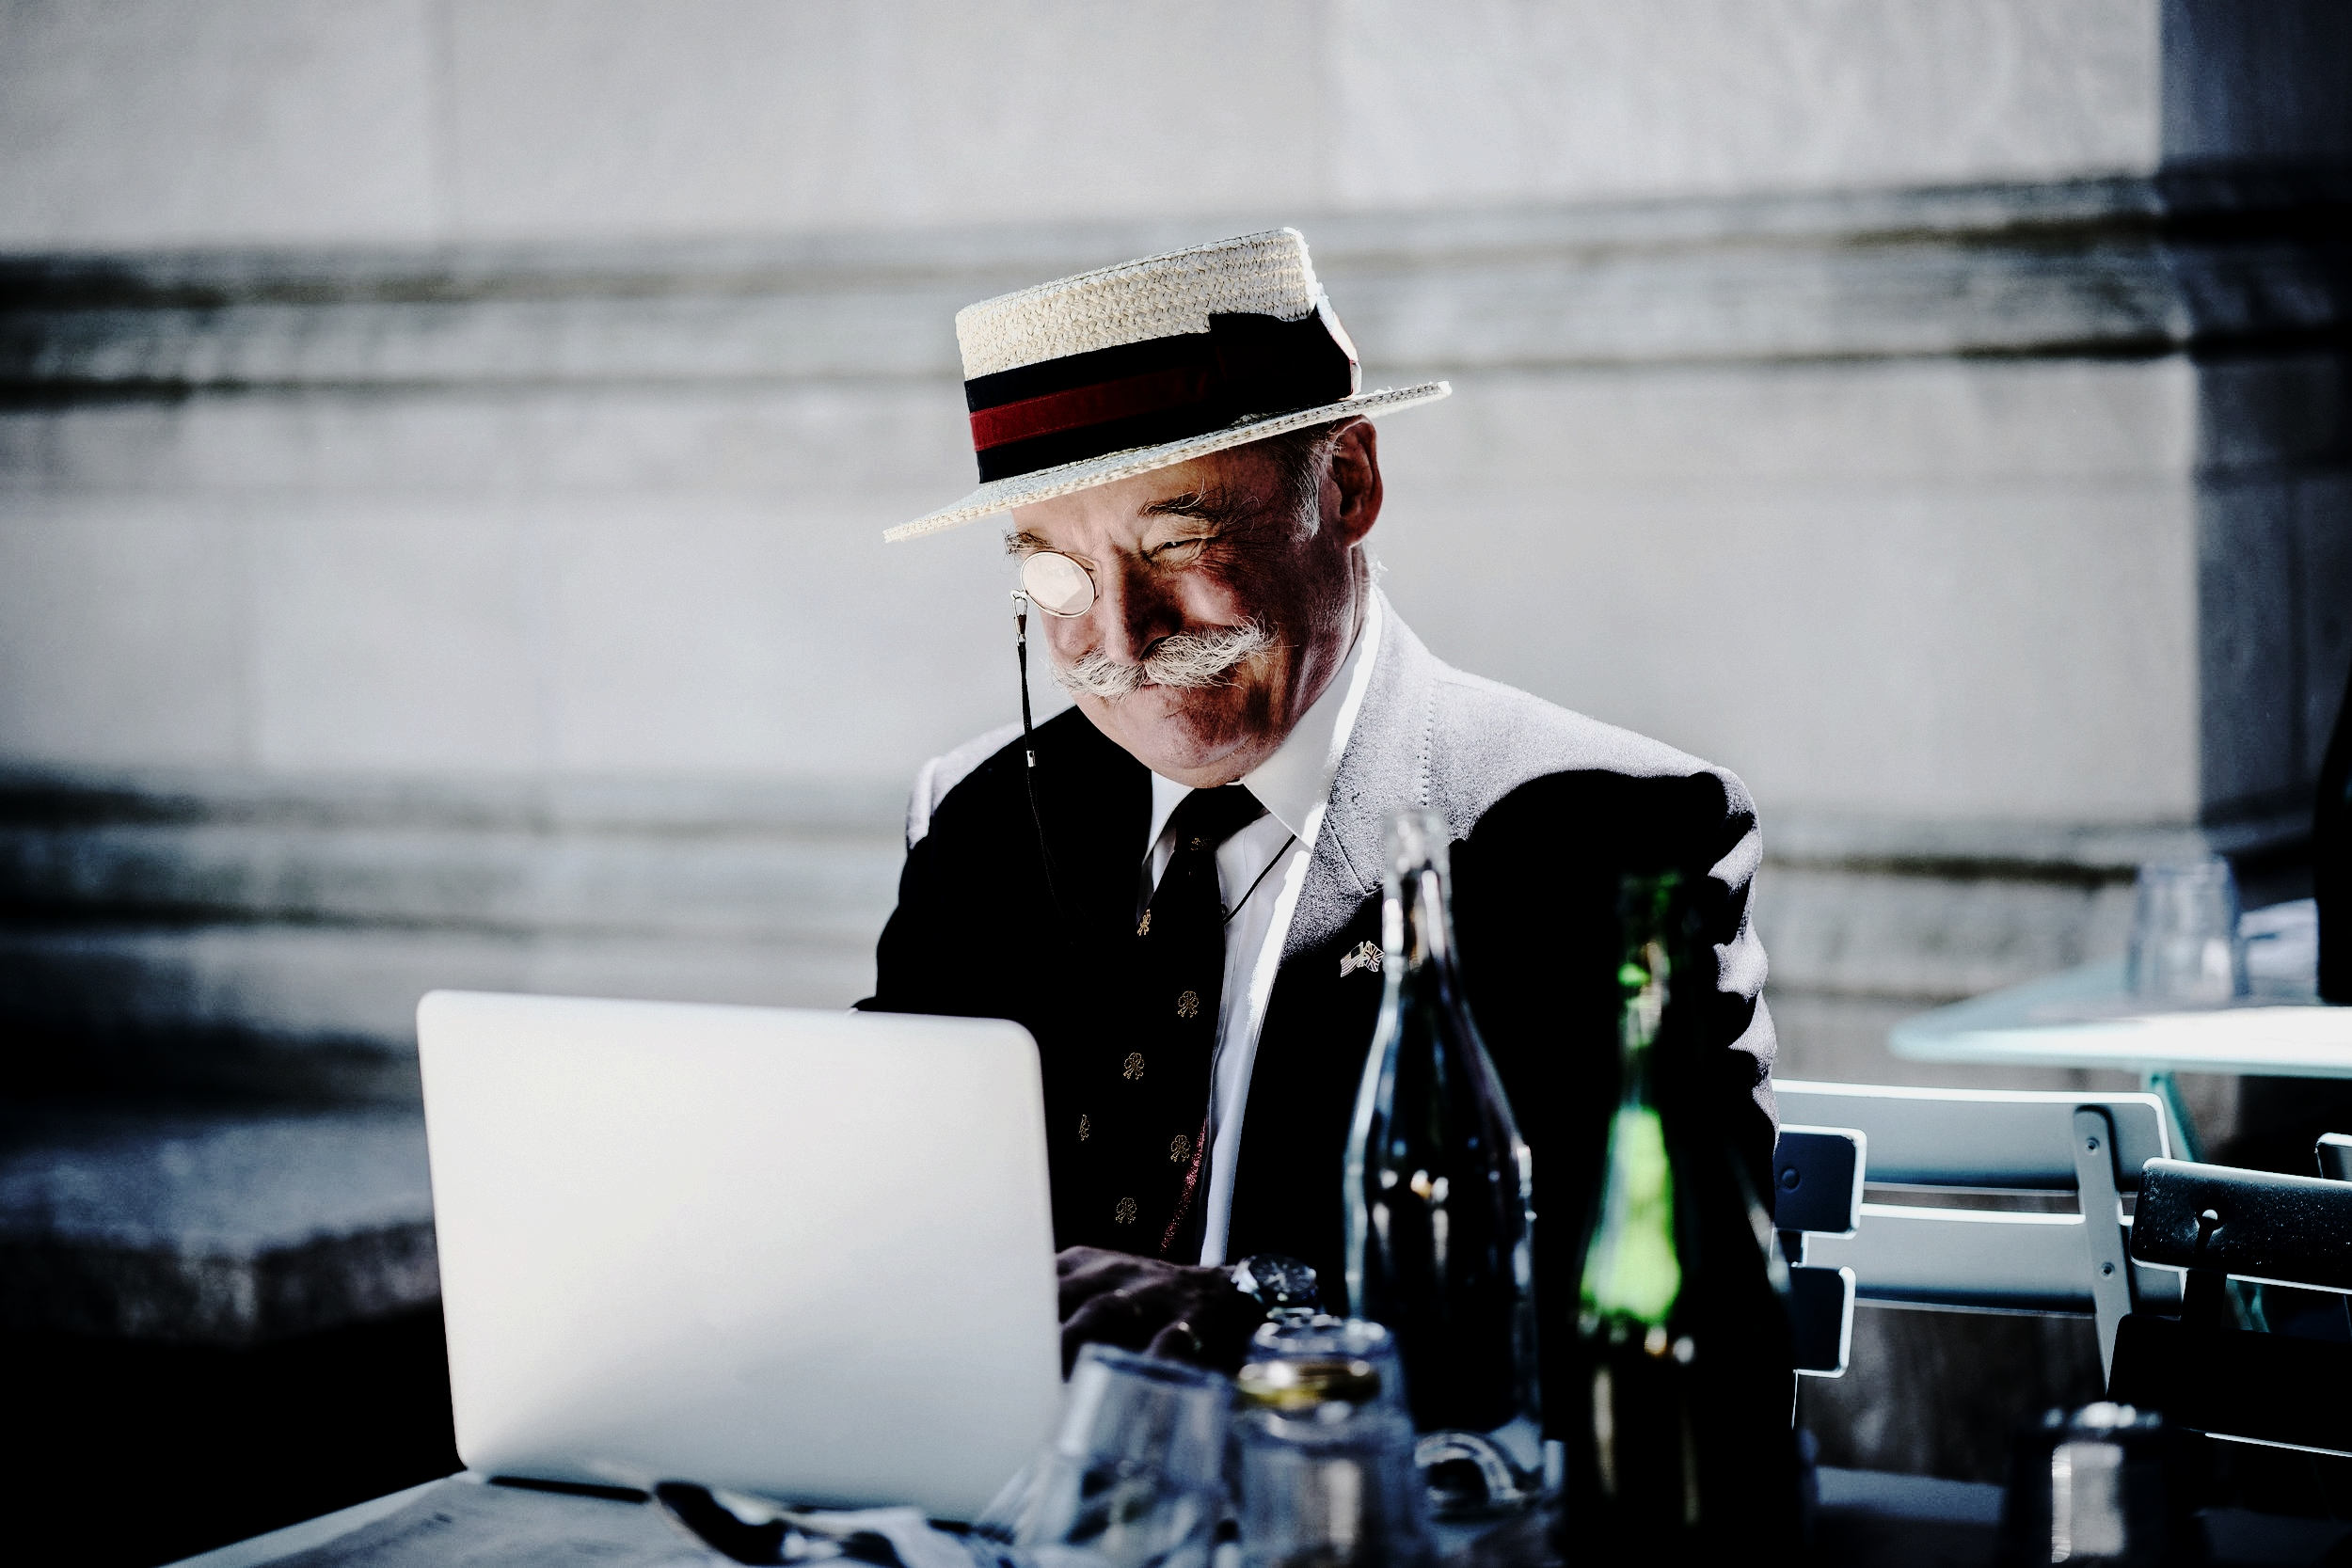 monacle and a computer.jpg